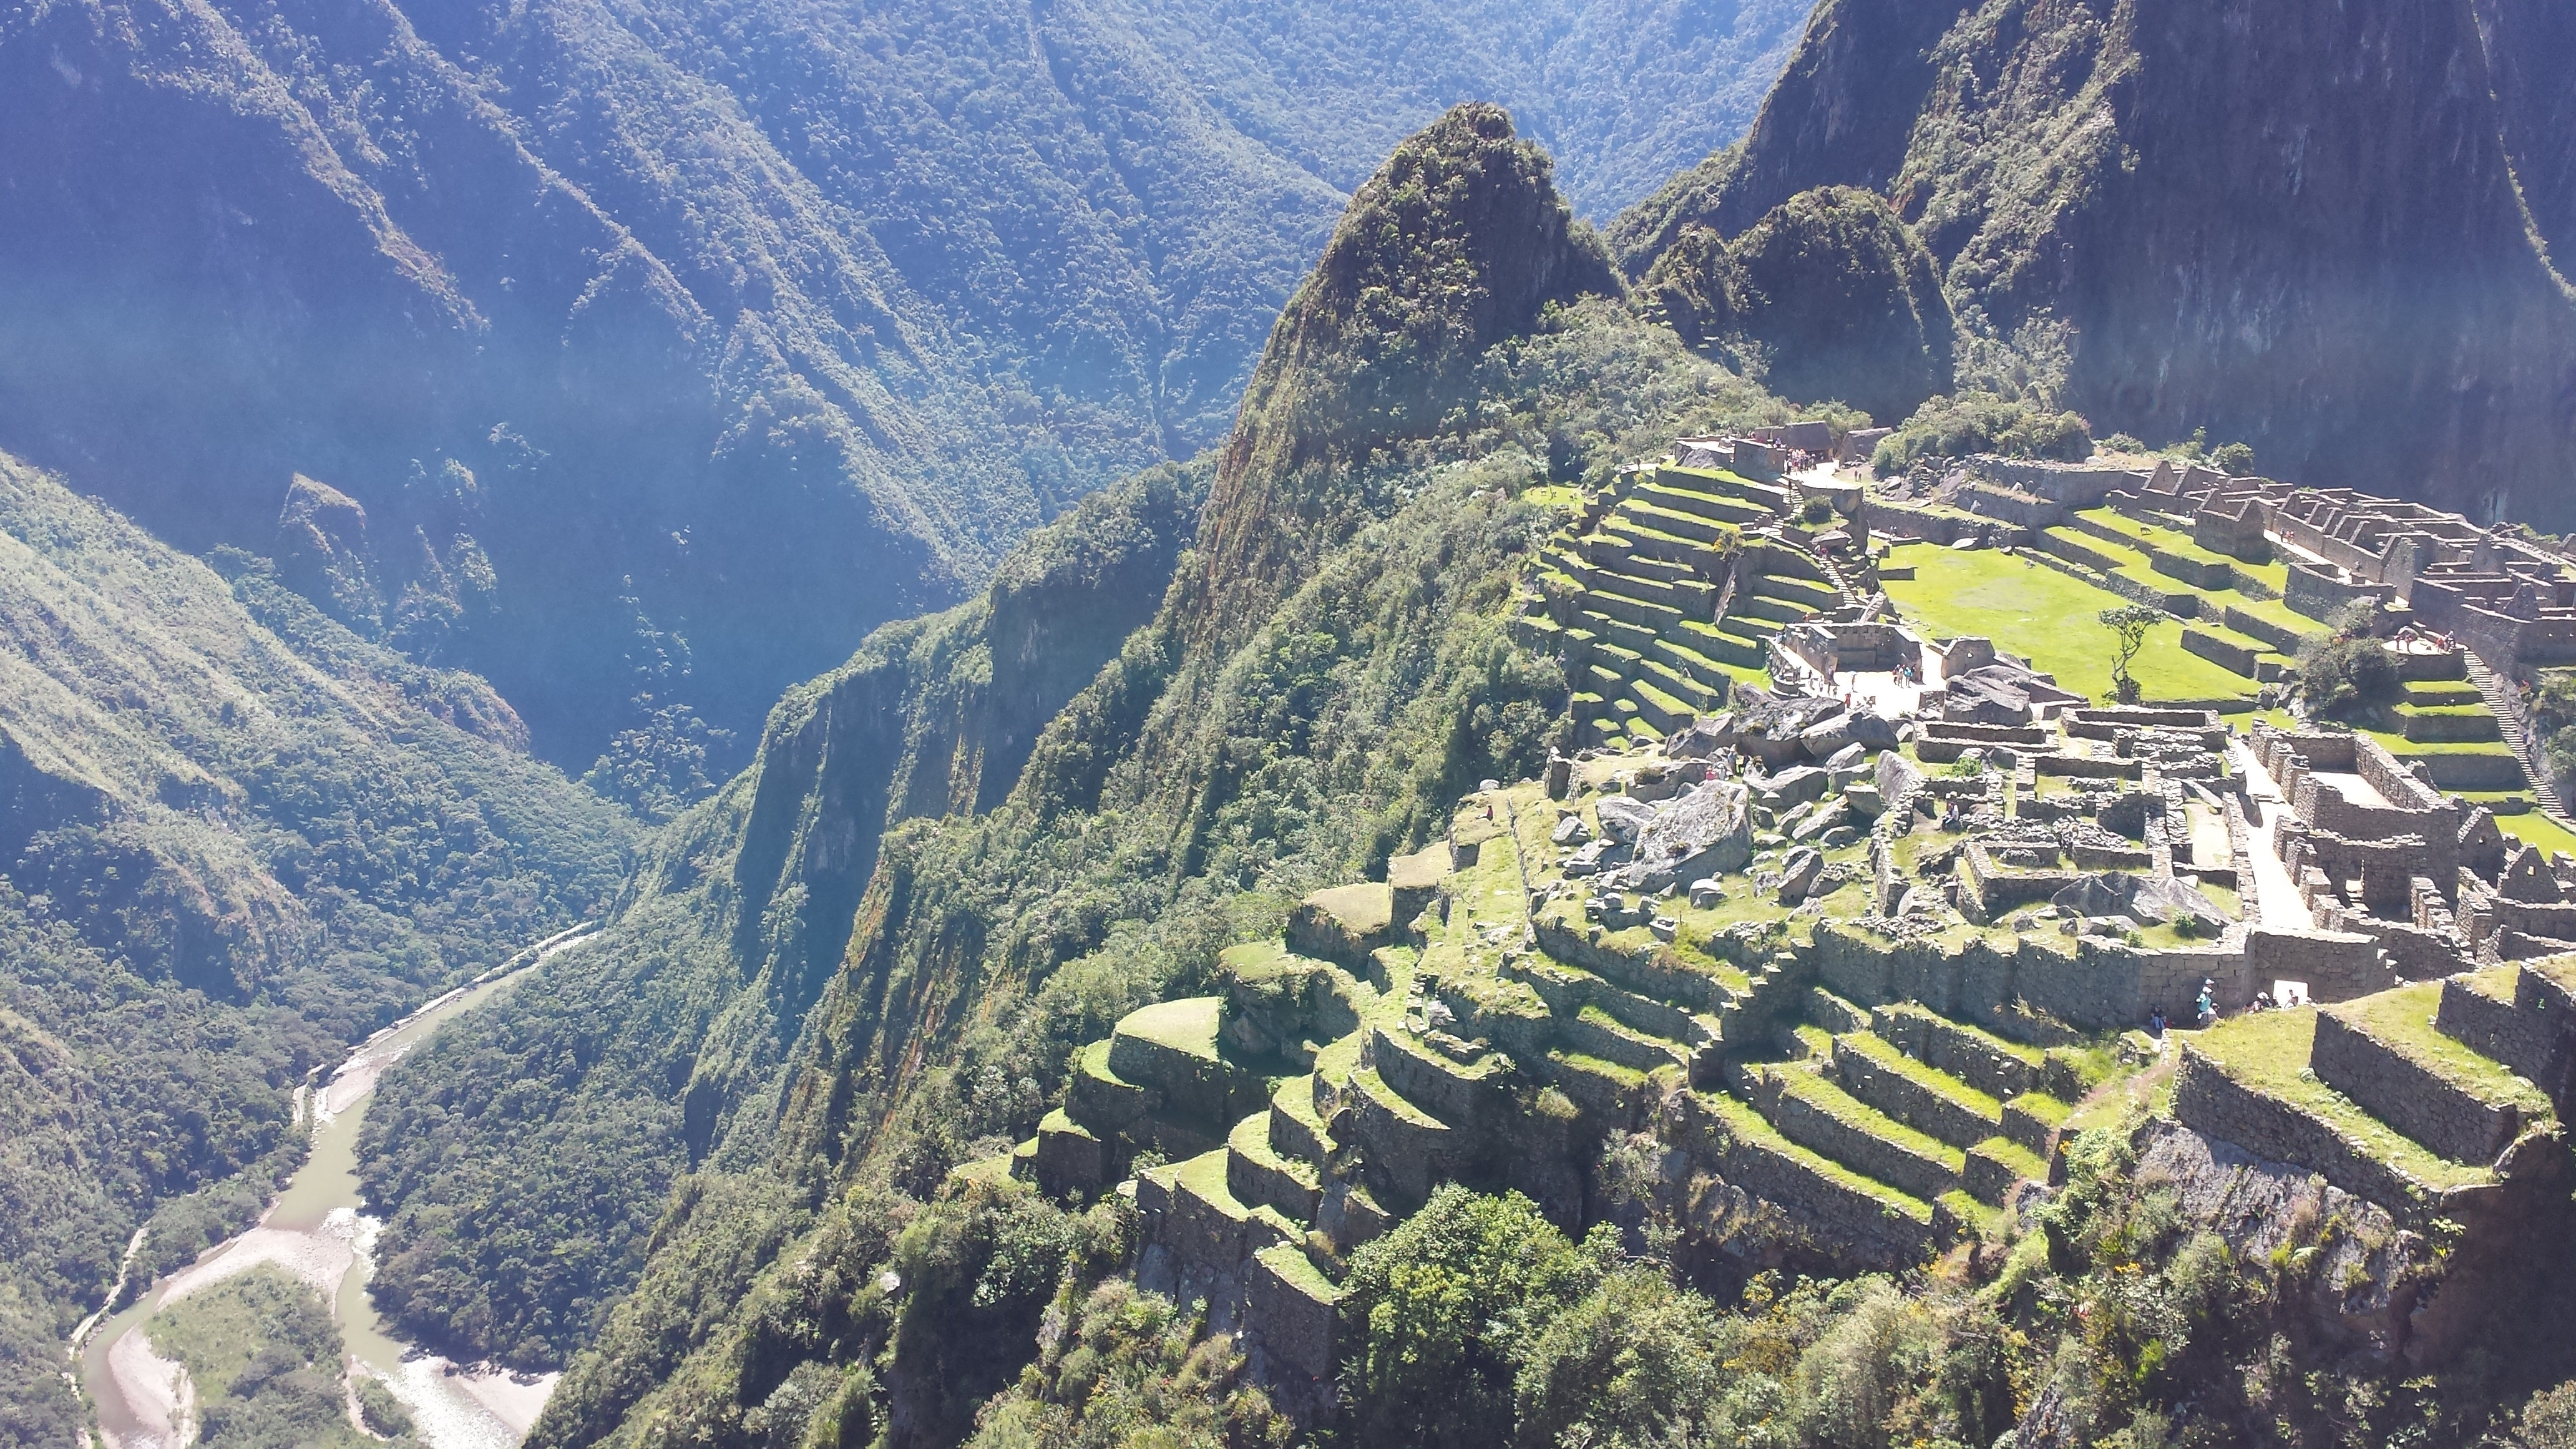 Peru,machu picchu, machu pichu, KB peru, peru tours, tours peru, machu picchu tours, tours machu picchu, tours to machu picchu, tours to machu pichu, tours machu pichu, kb, kb tambo, kbtambo, kb tambo tours, kbtambo tours, kb tours, kbtours, kbtambo tours, kb tambo tours, machu picchu packages, packages machu picchu, adventure tours peru, peru adventure tours, mountain bike tours peru, peru mountain bike tours, trekking peru, peru trekking tours